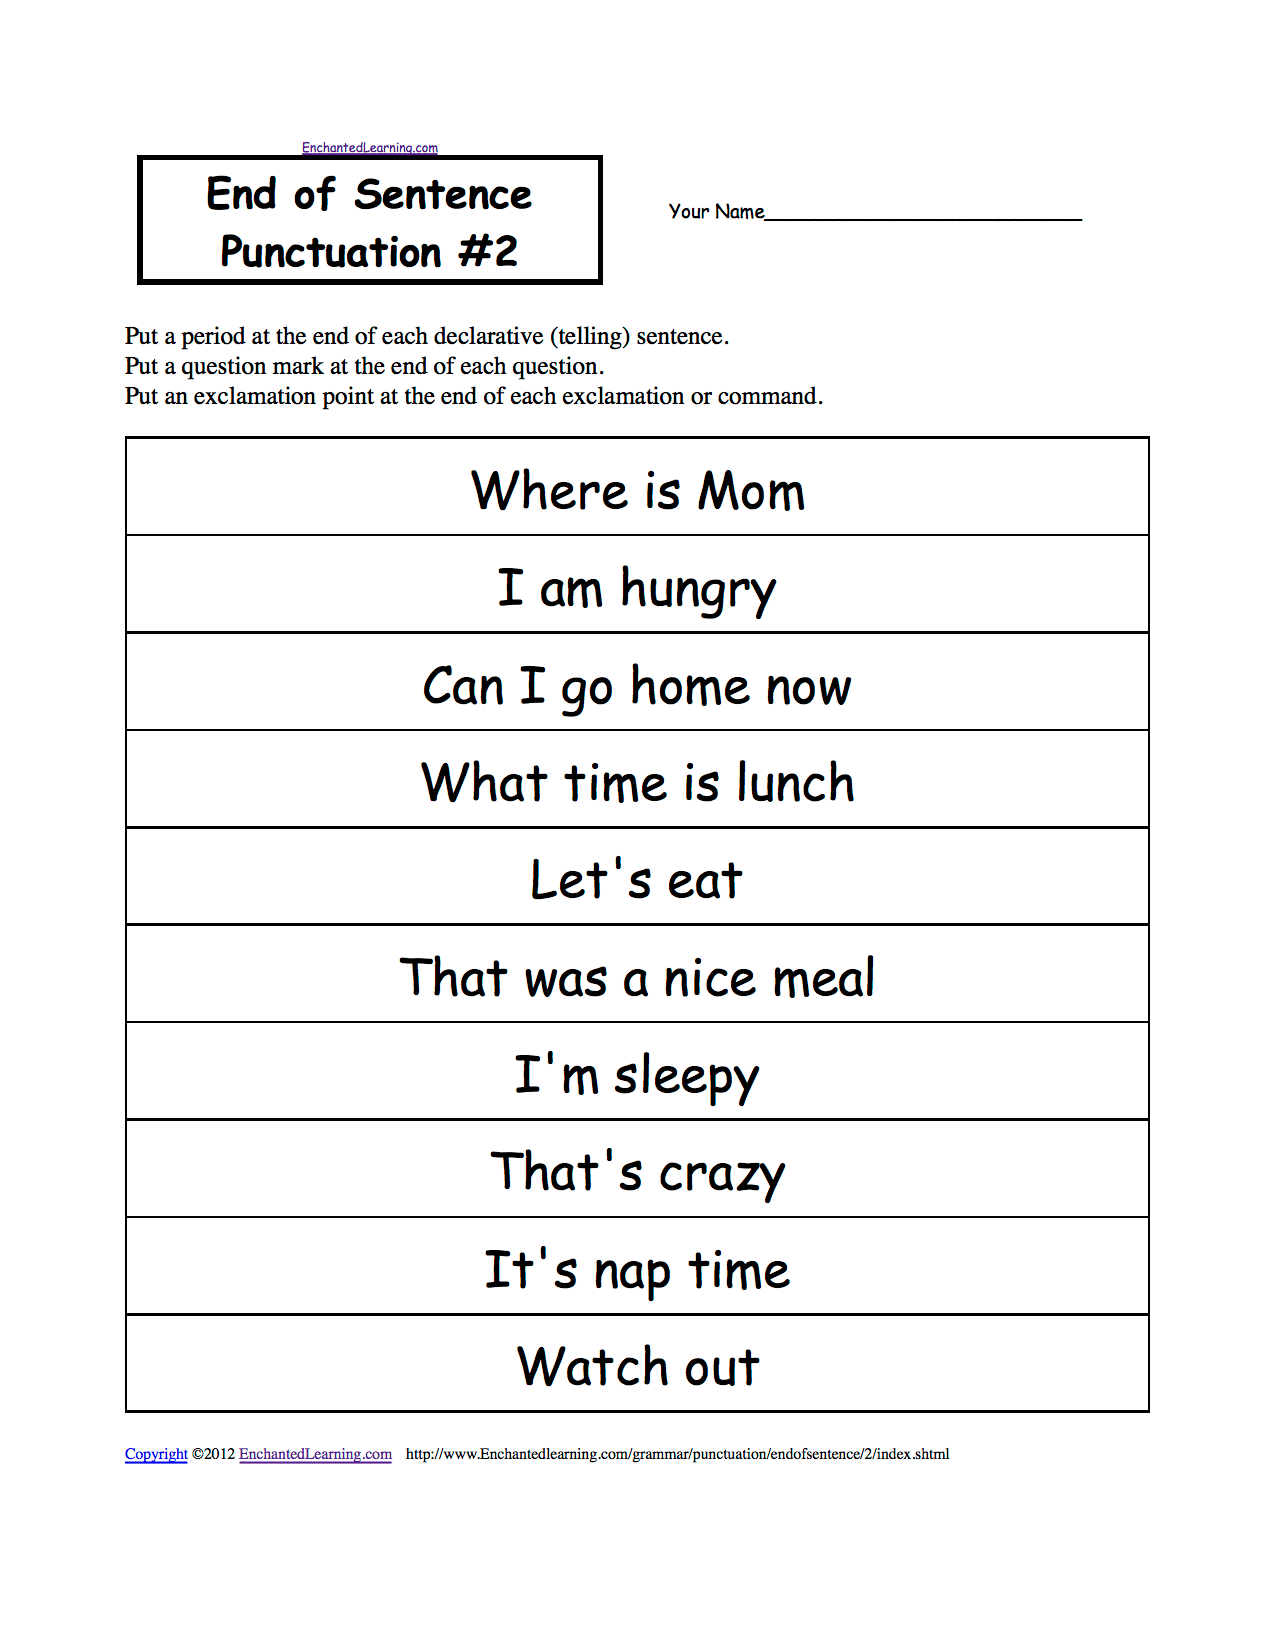 End Of Sentence Punctuation Printable Worksheets Enchantedlearning